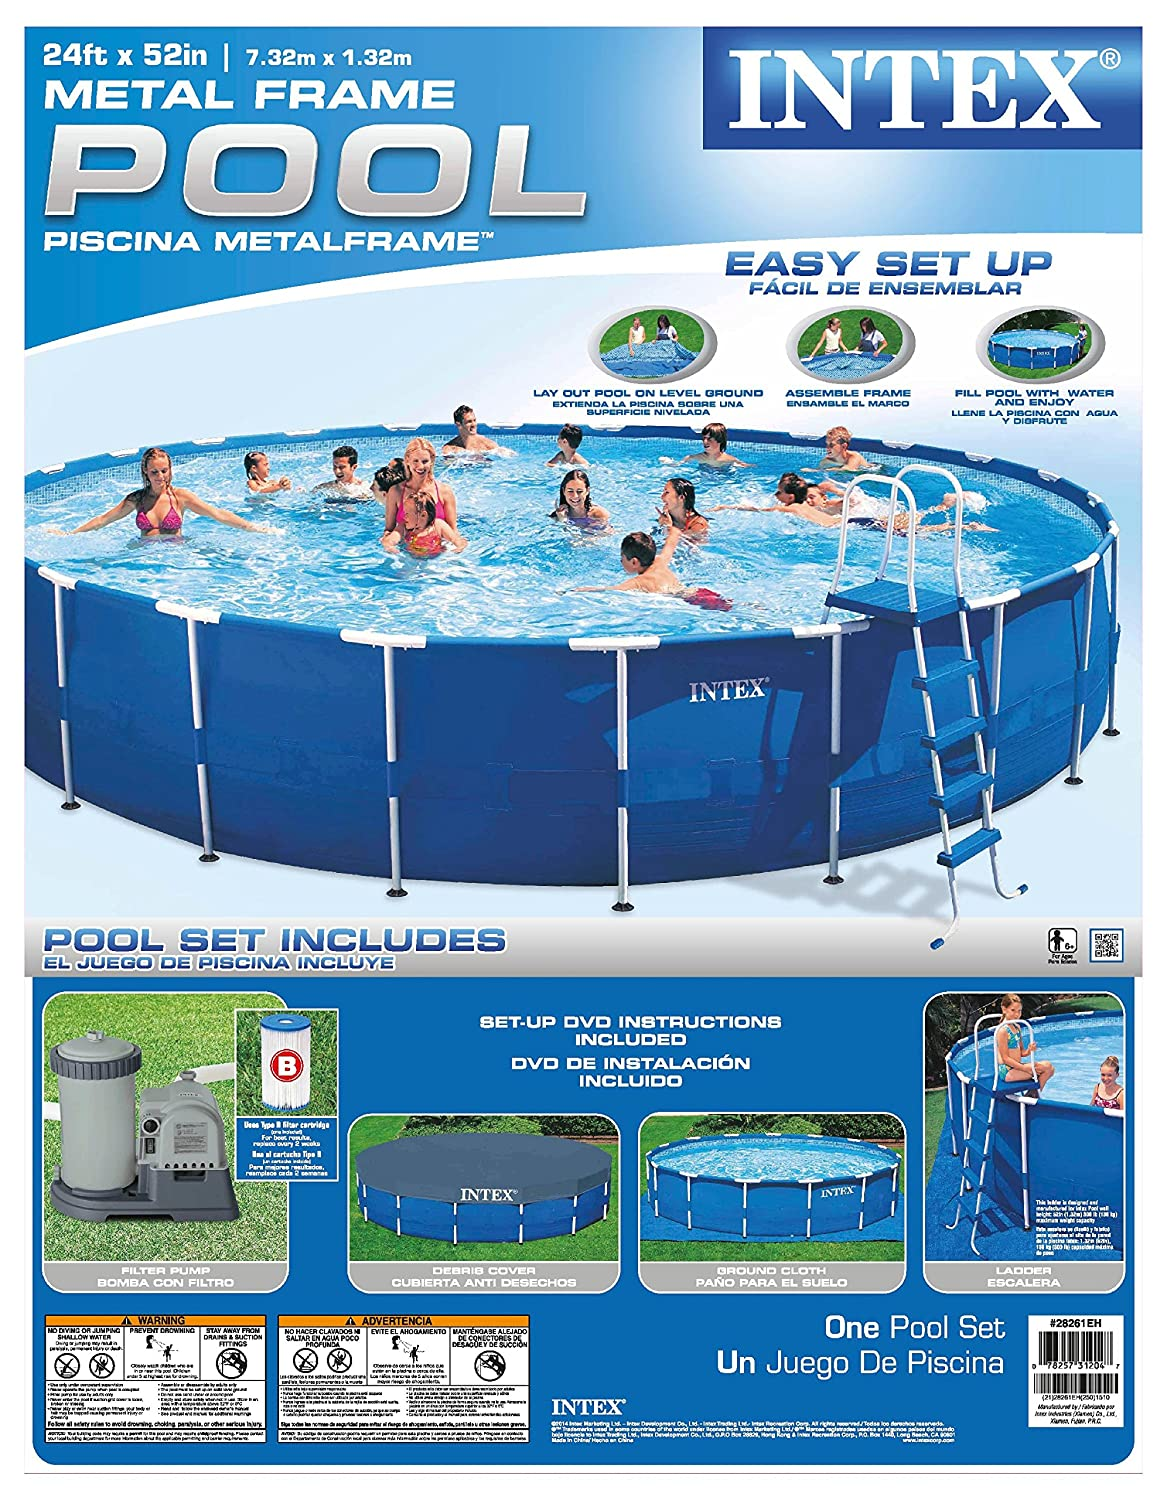 Amazon.com: Intex Metal Frame Pool Set, 24-Feet by 52-Inch (Older ...